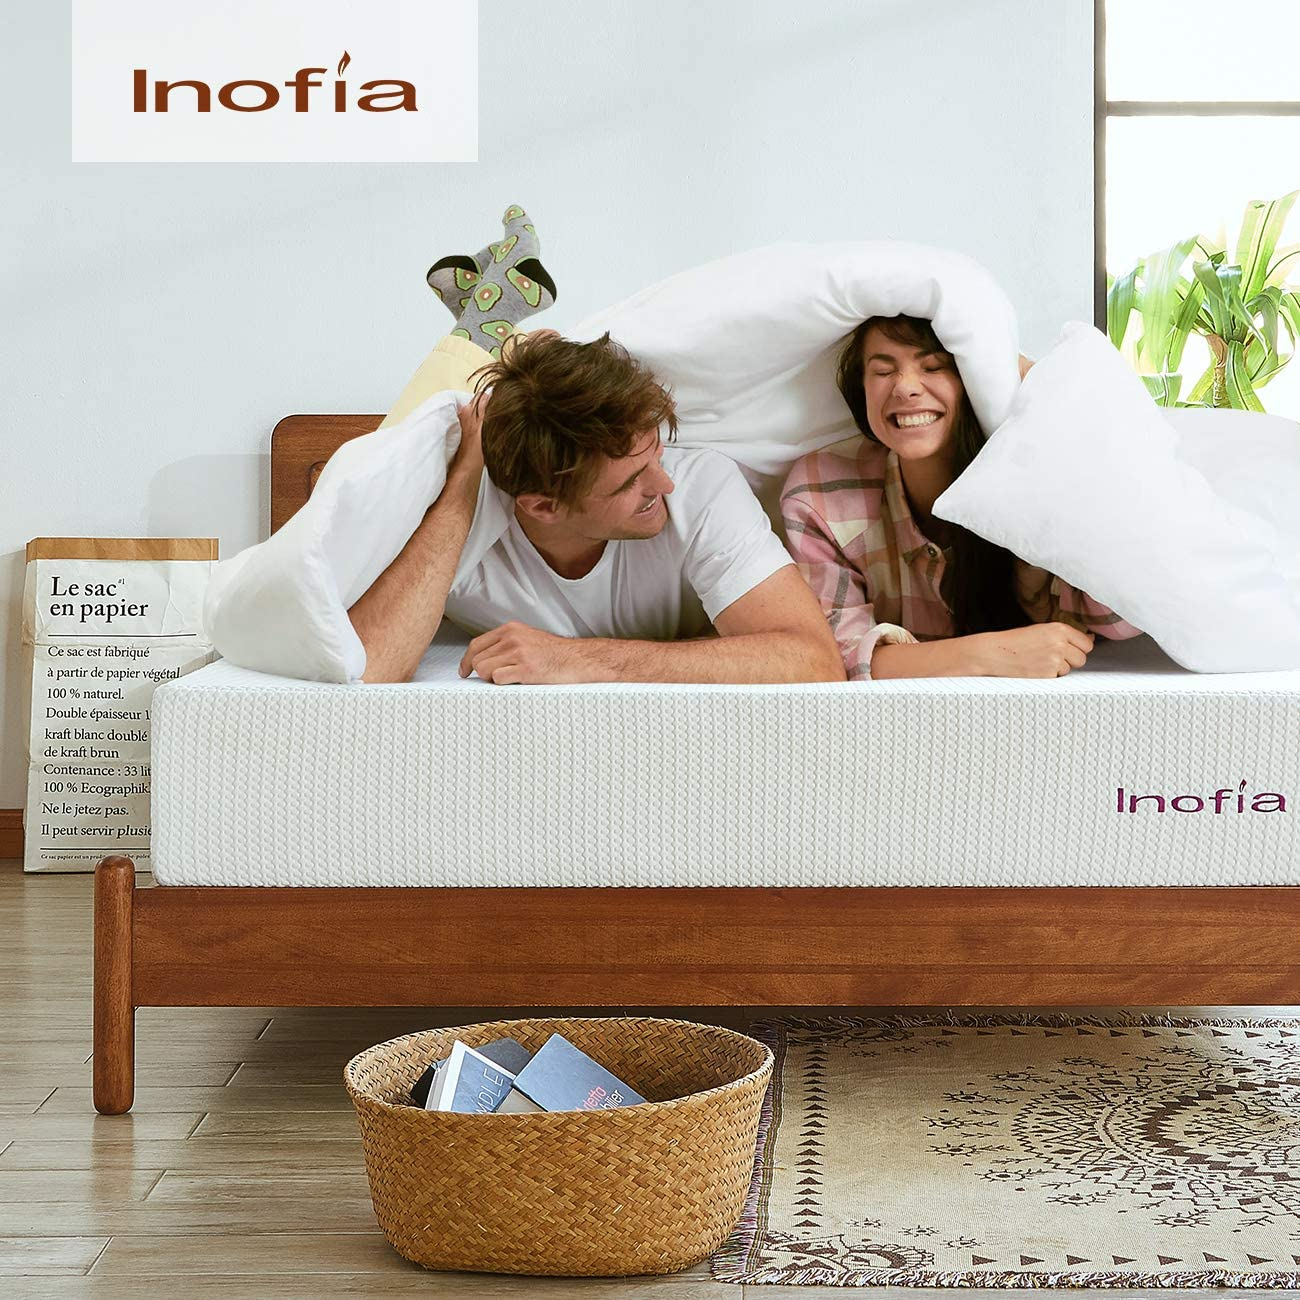 How to choose The Comfortable Memory Foam Mattress for You